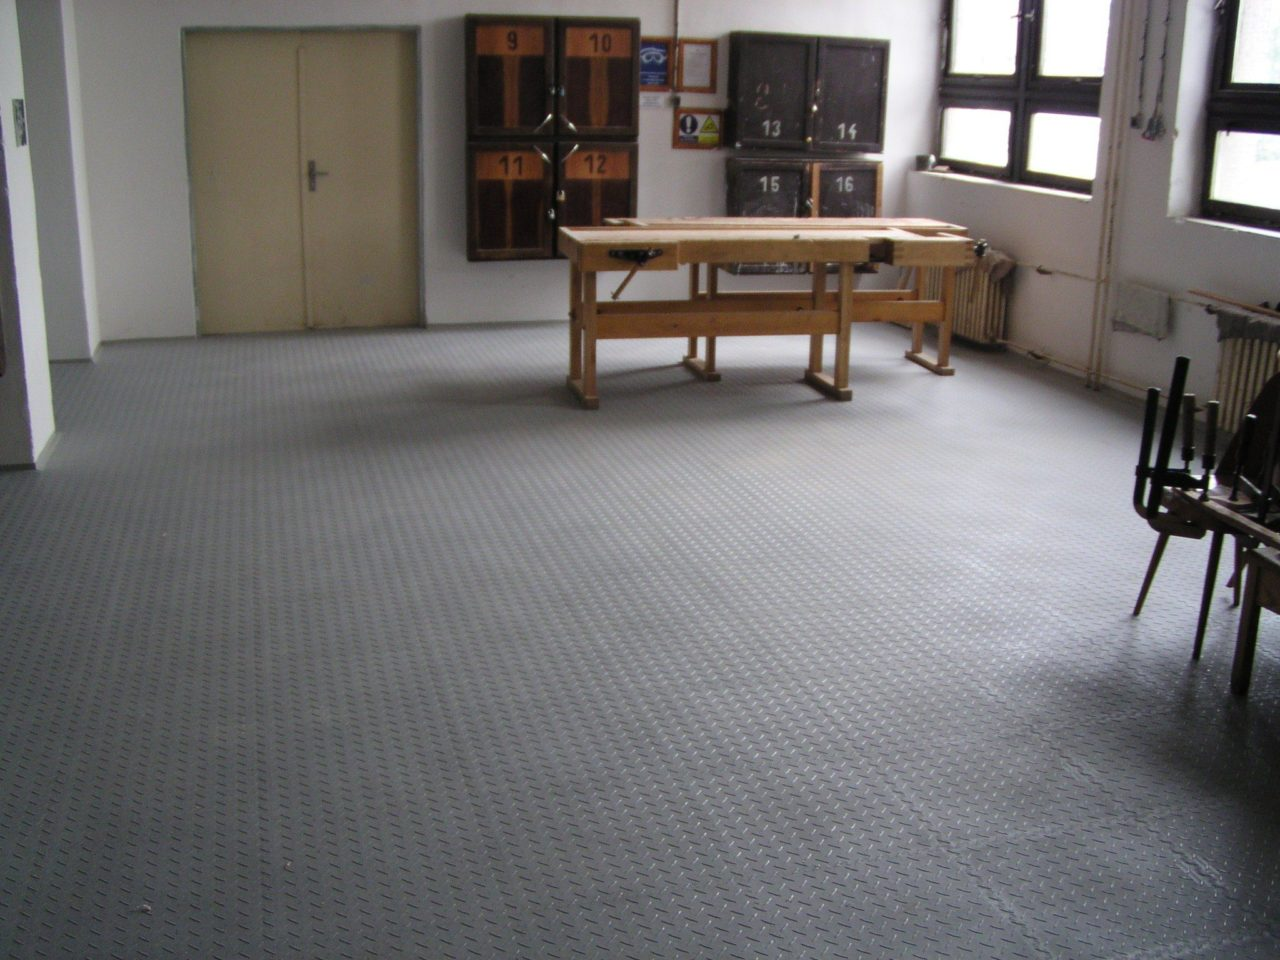 office tile flooring. A Good Design For The Commercial Floorings Should Rather Be Conservative And Emphasize Small Features Only Sporadically. Large Patters In Office Spaces Tile Flooring I